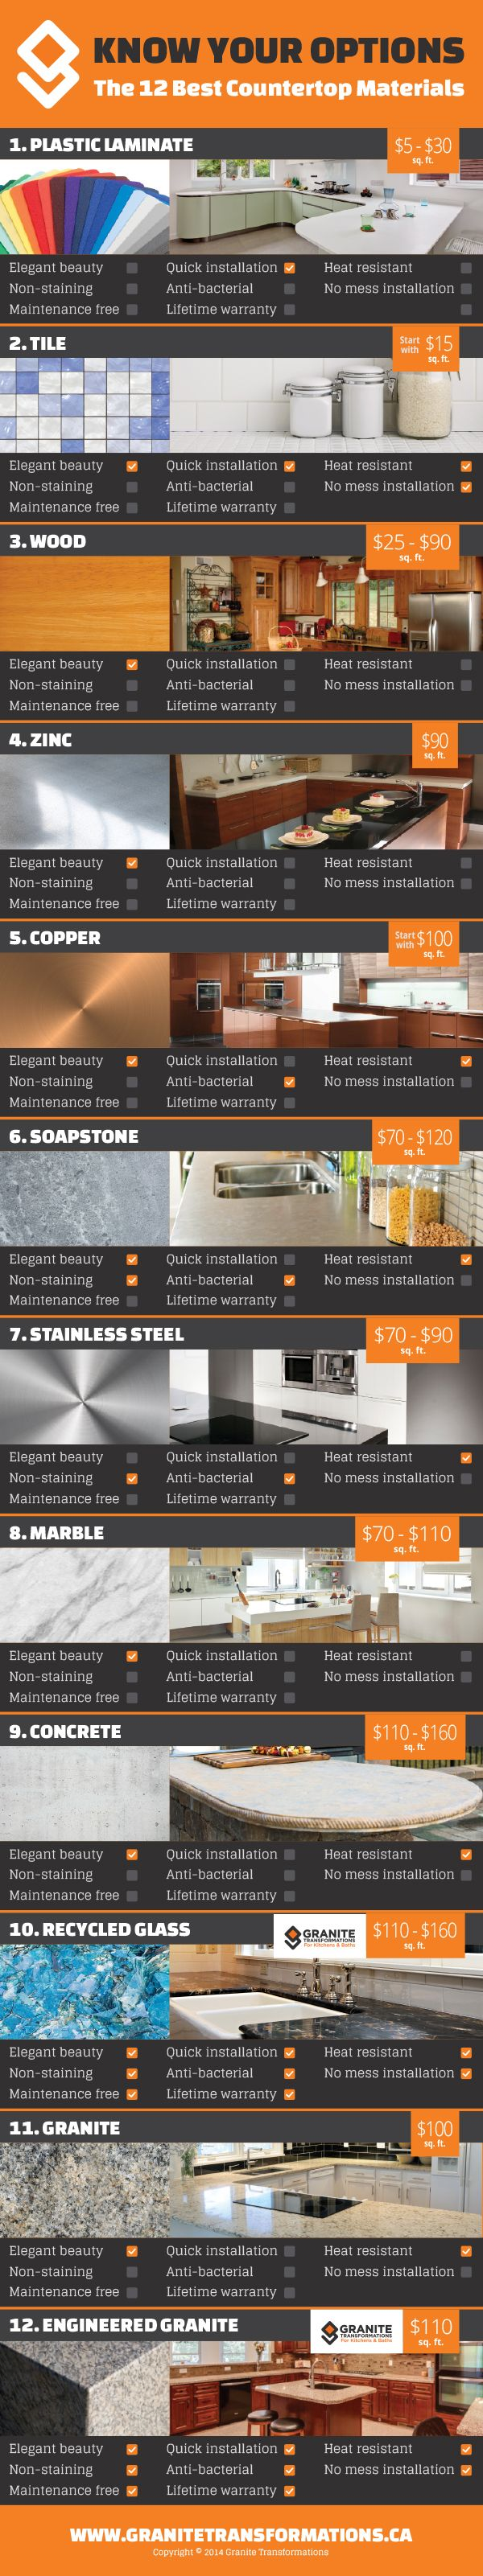 There are a handful of great looking materials to use as your new countertop. Want to know the best kitchen countertop options? Alright, alright, alright.